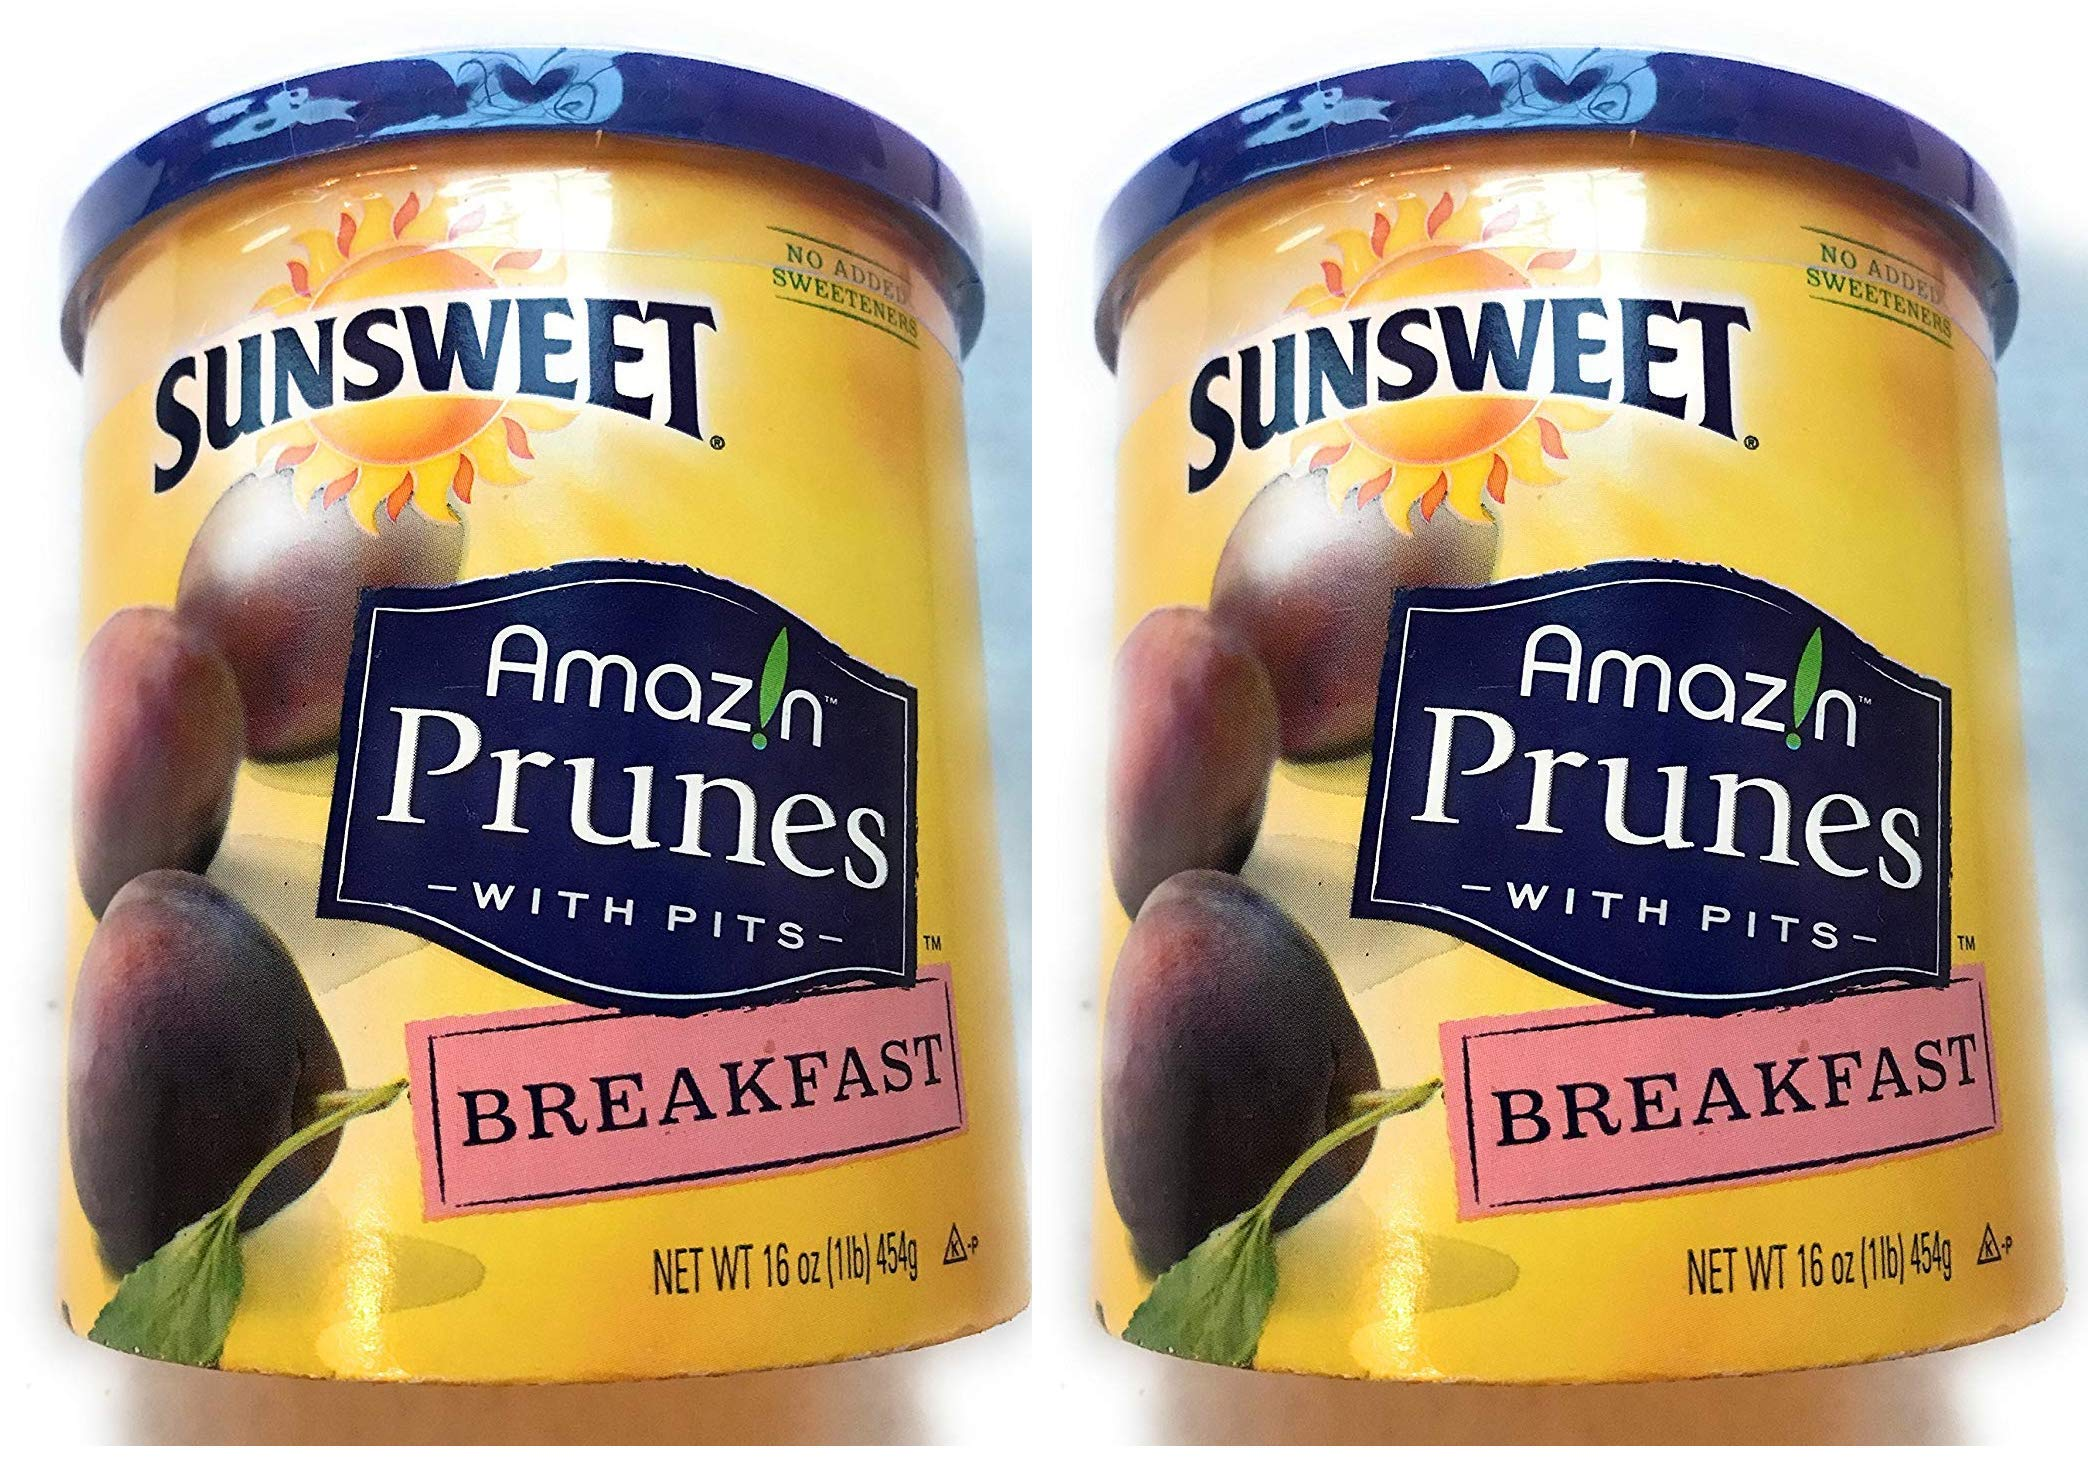 Sunsweet Amazin Prunes With Pits Breakfast Prunes 2 16 oz Containers - Delicious Dried Plums - GREAT VALUE